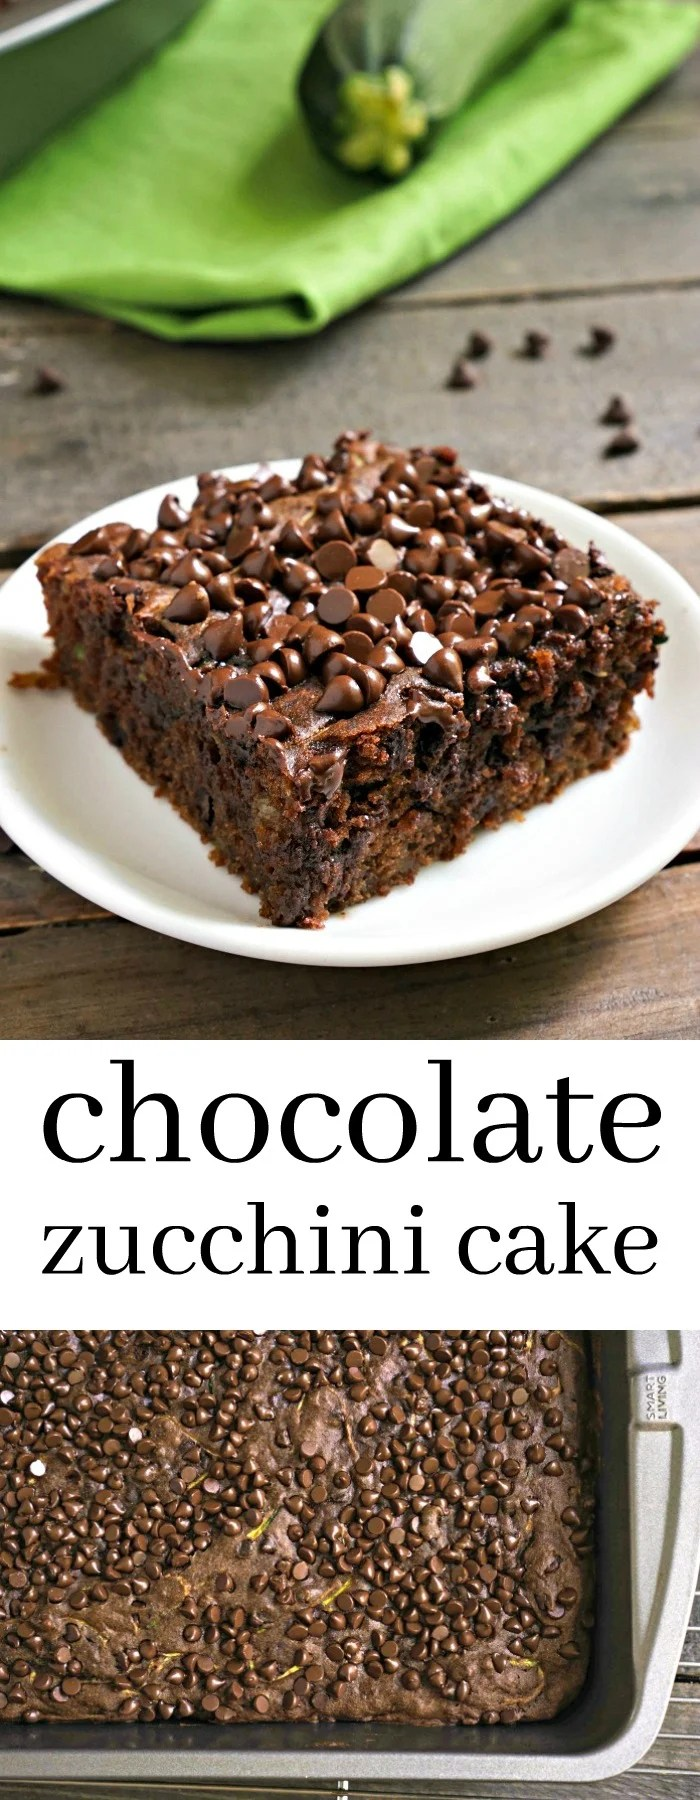 This chocolate zucchini cake is a healthy summer treat that you can feel good about eating. Such a delicious gluten-free dessert recipe from realfoodrealdeals.com